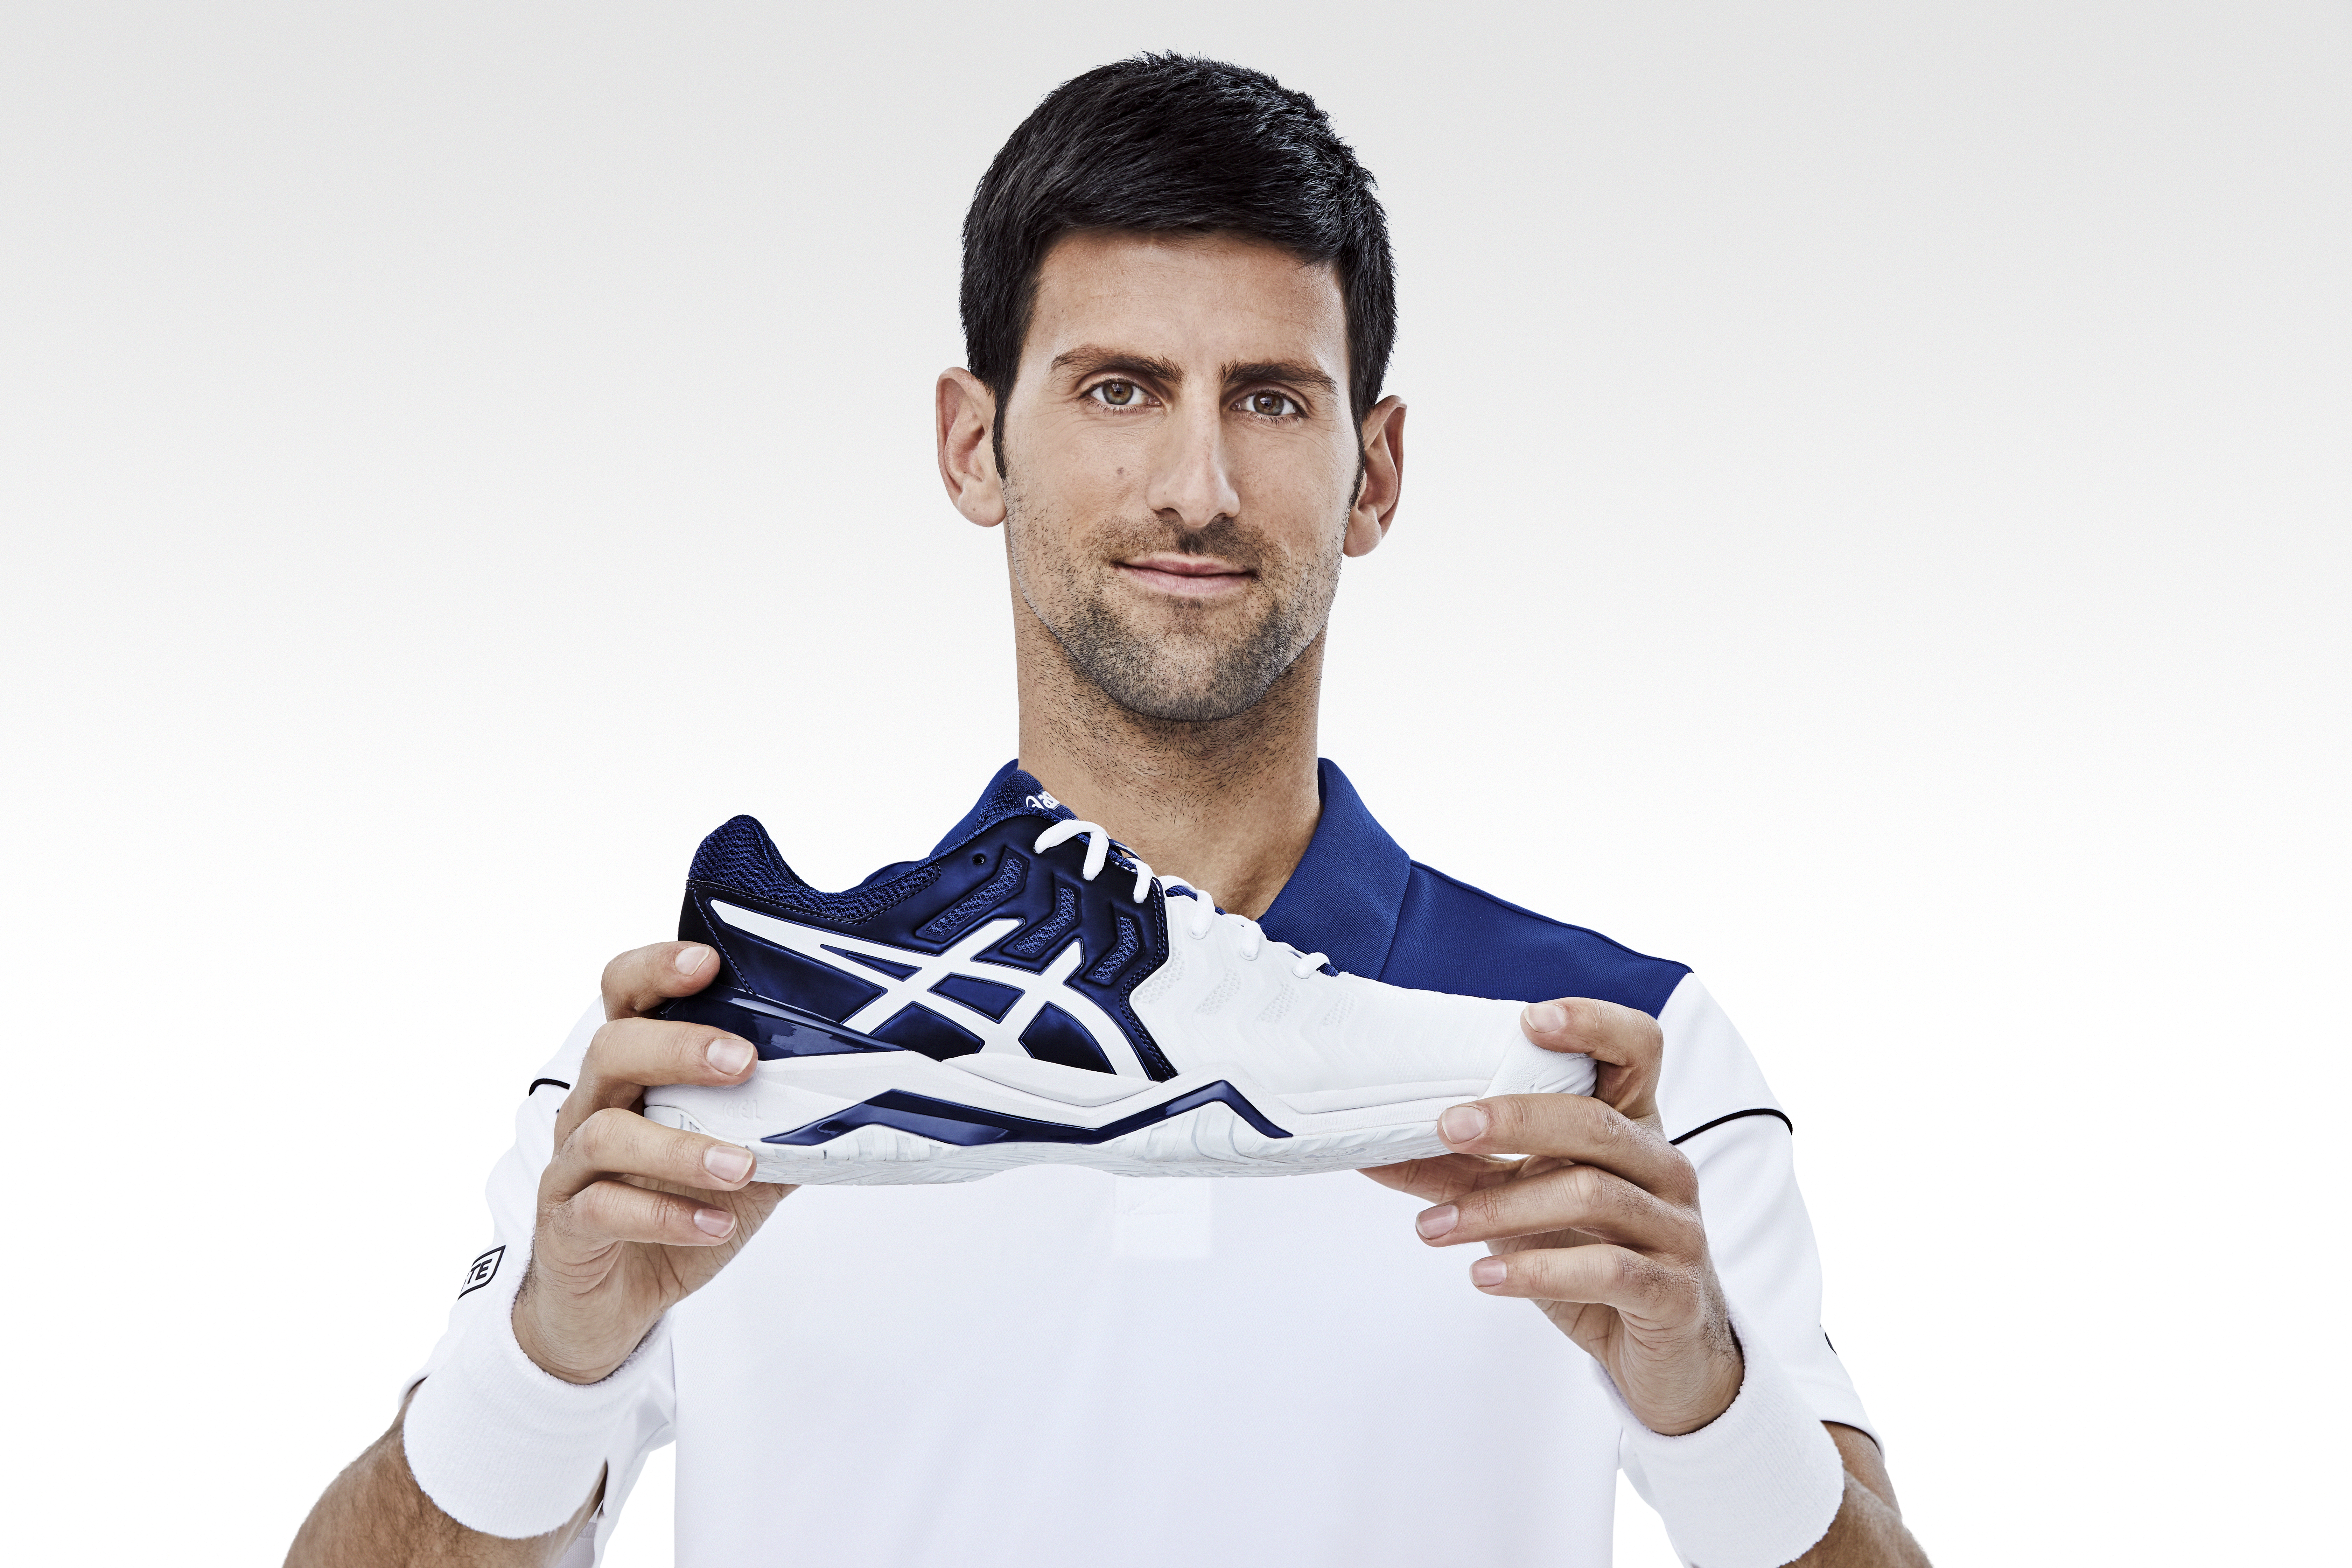 Kobe, Japan, January 11th, 2018 - Today, ASICS announced a partnership with  world class tennis player, Novak Djokovic to celebrate the launch of an ...